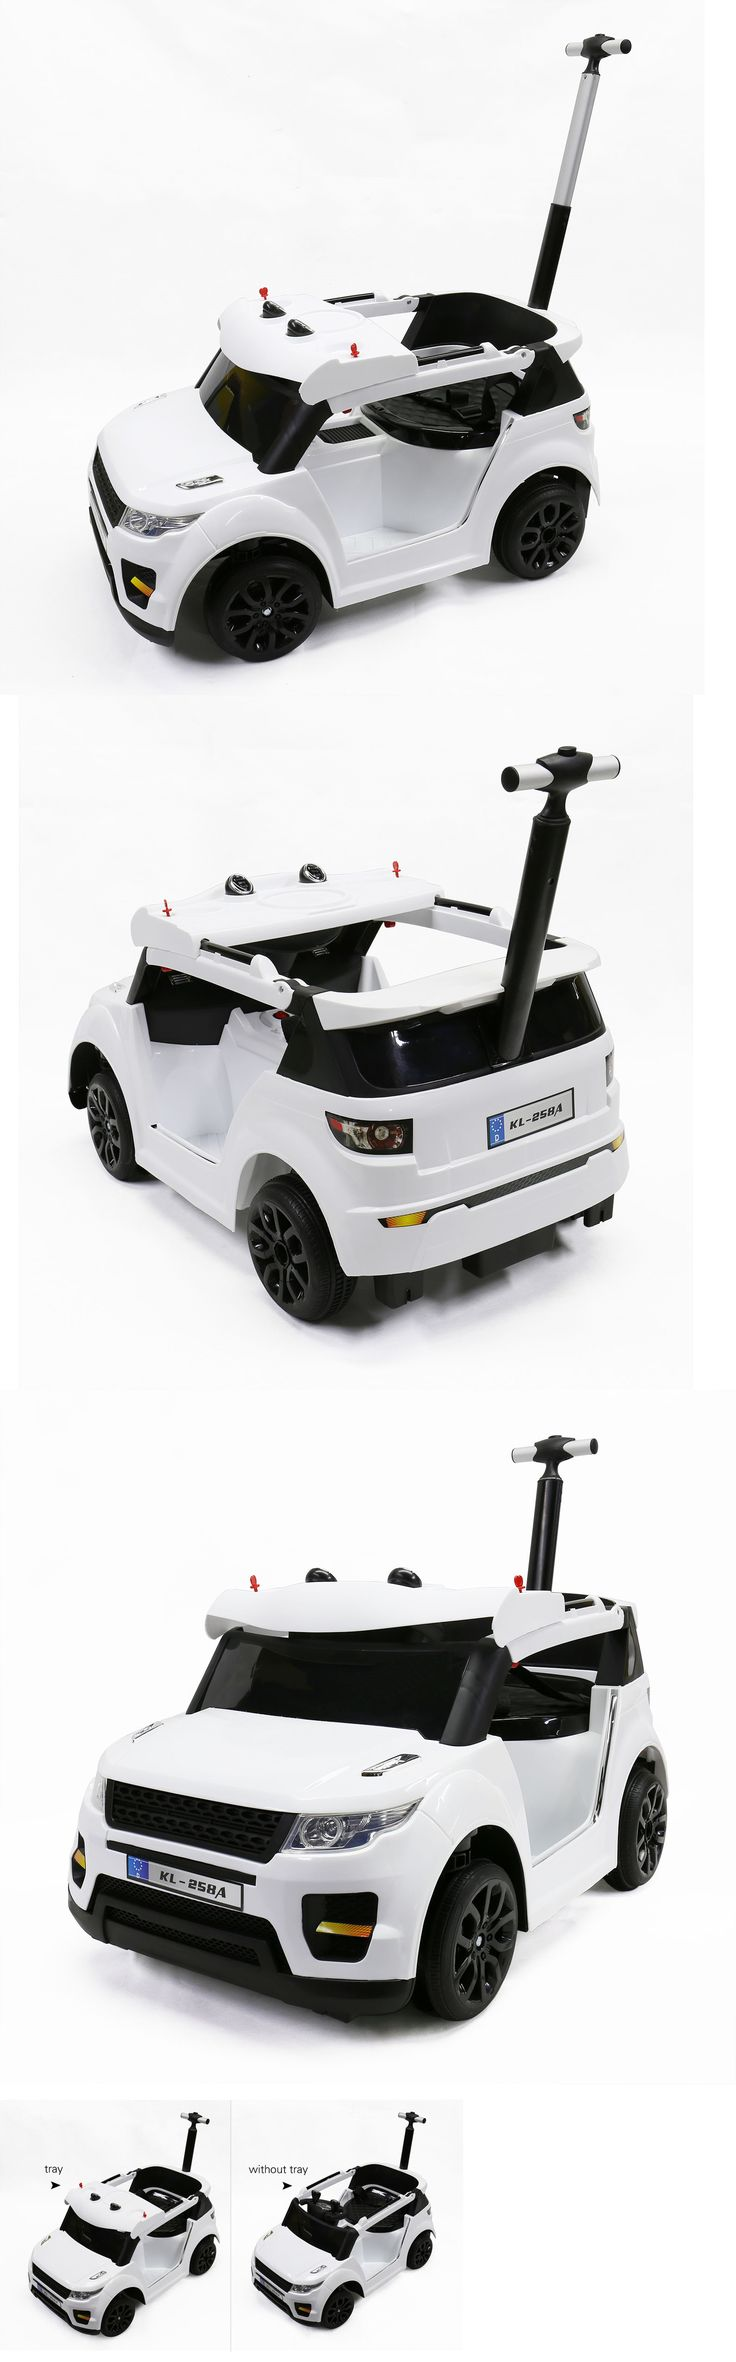 1970-Now 11746: Electric Power Wheels For Kids Rc Remote Control Battery With A Push Hand, White -> BUY IT NOW ONLY: $159.99 on eBay!